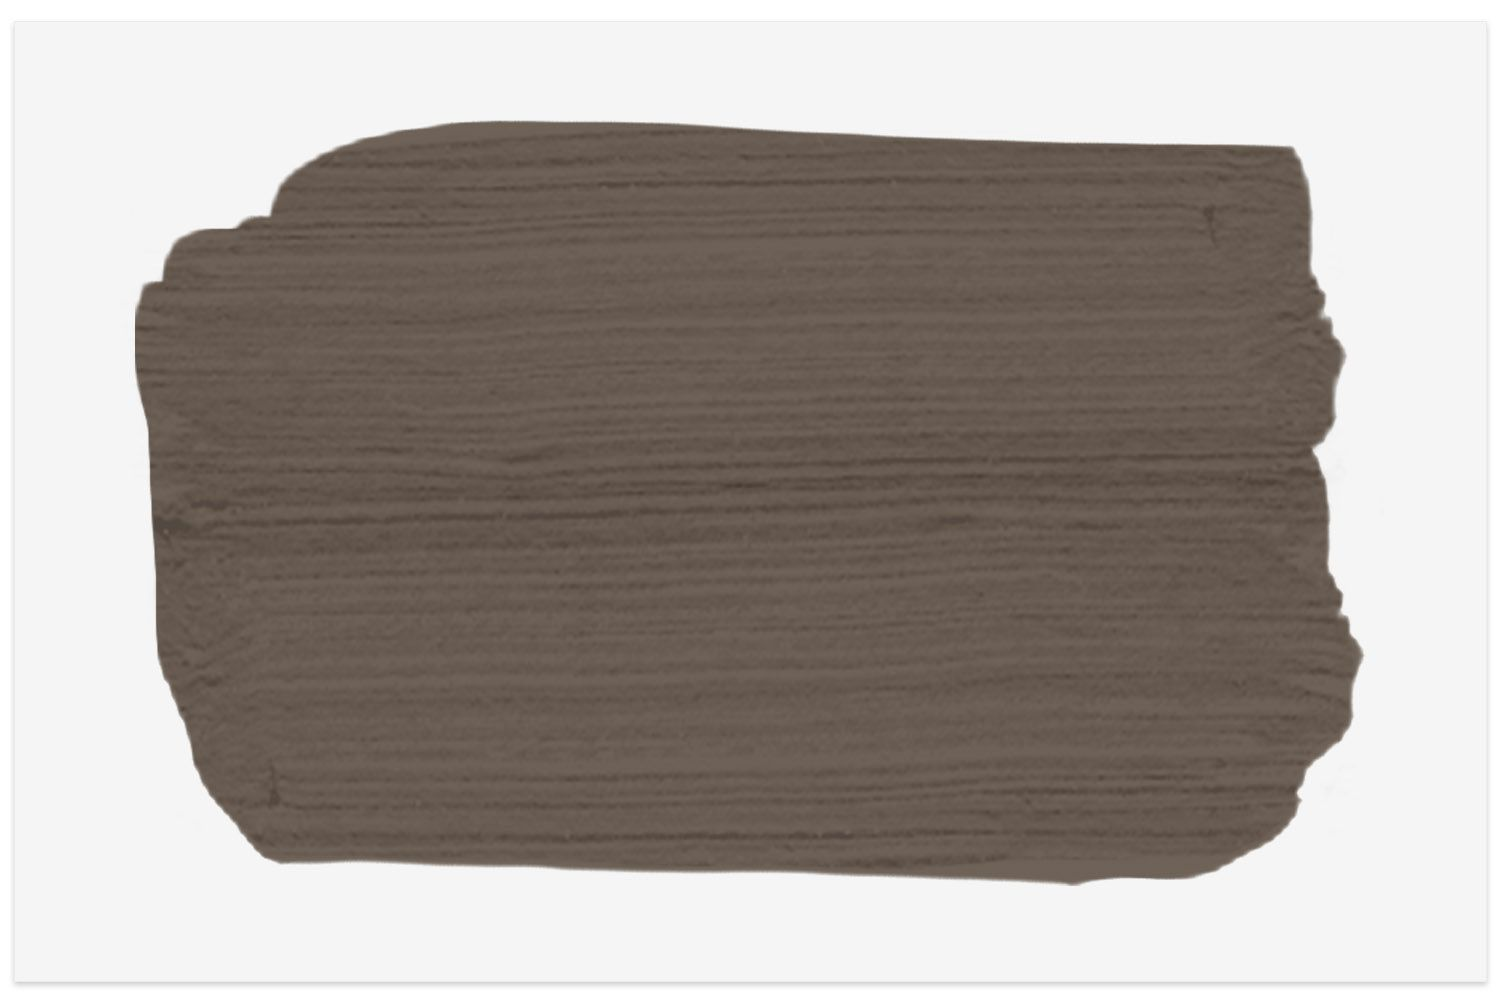 Homestead Brown paint swatch from Sherwin Williams